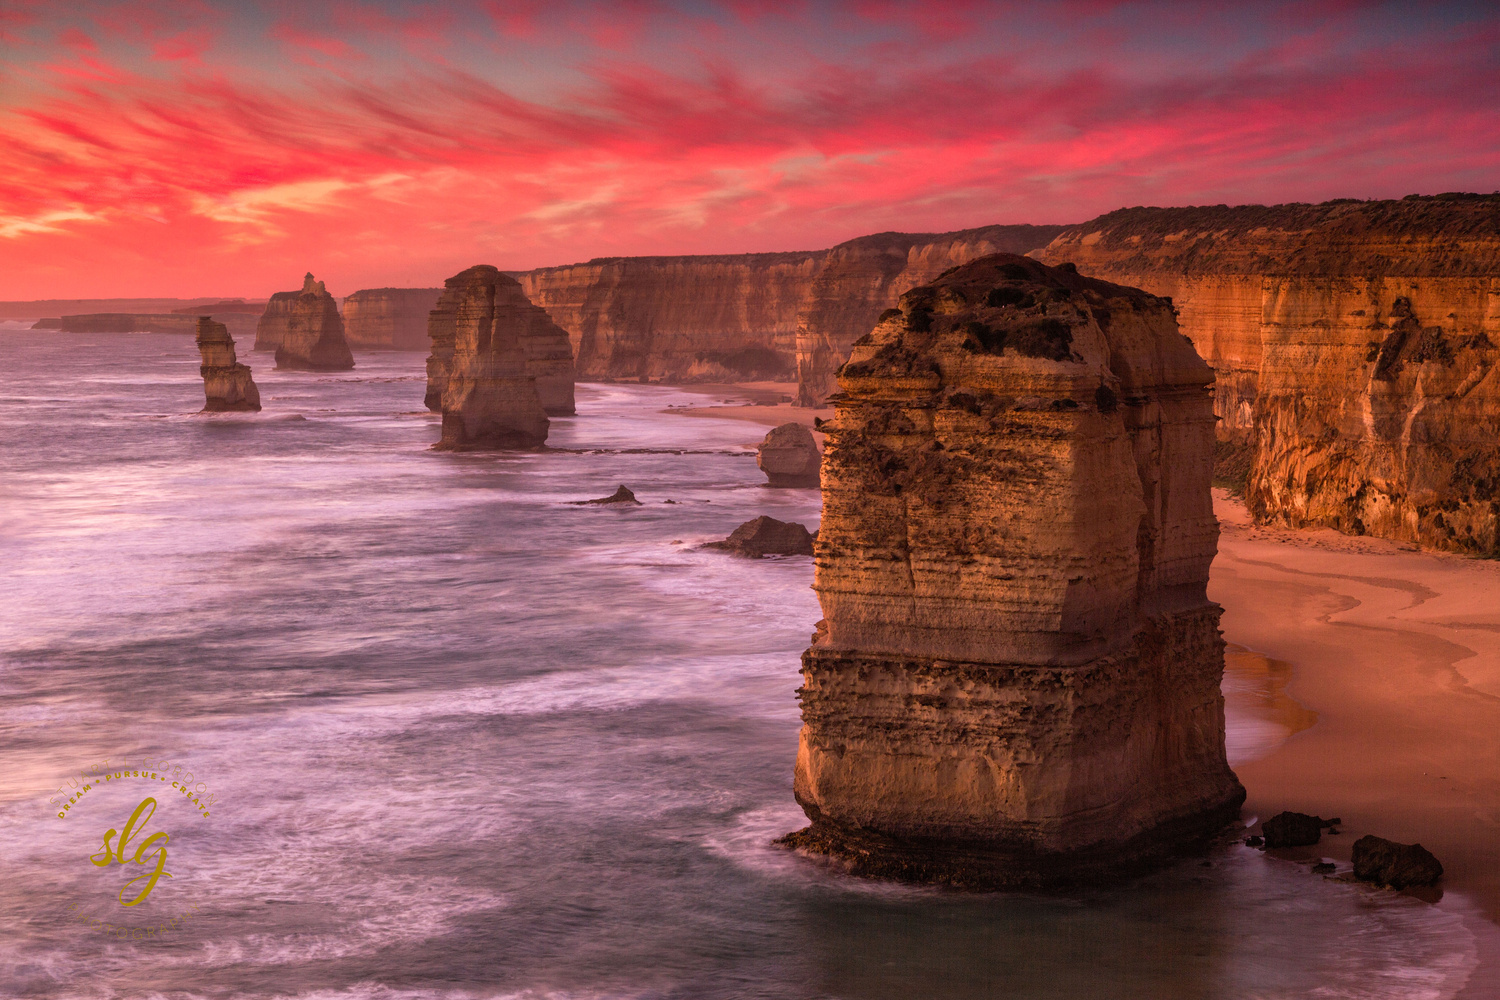 Sunset at the Apostles by Stuart Gordon